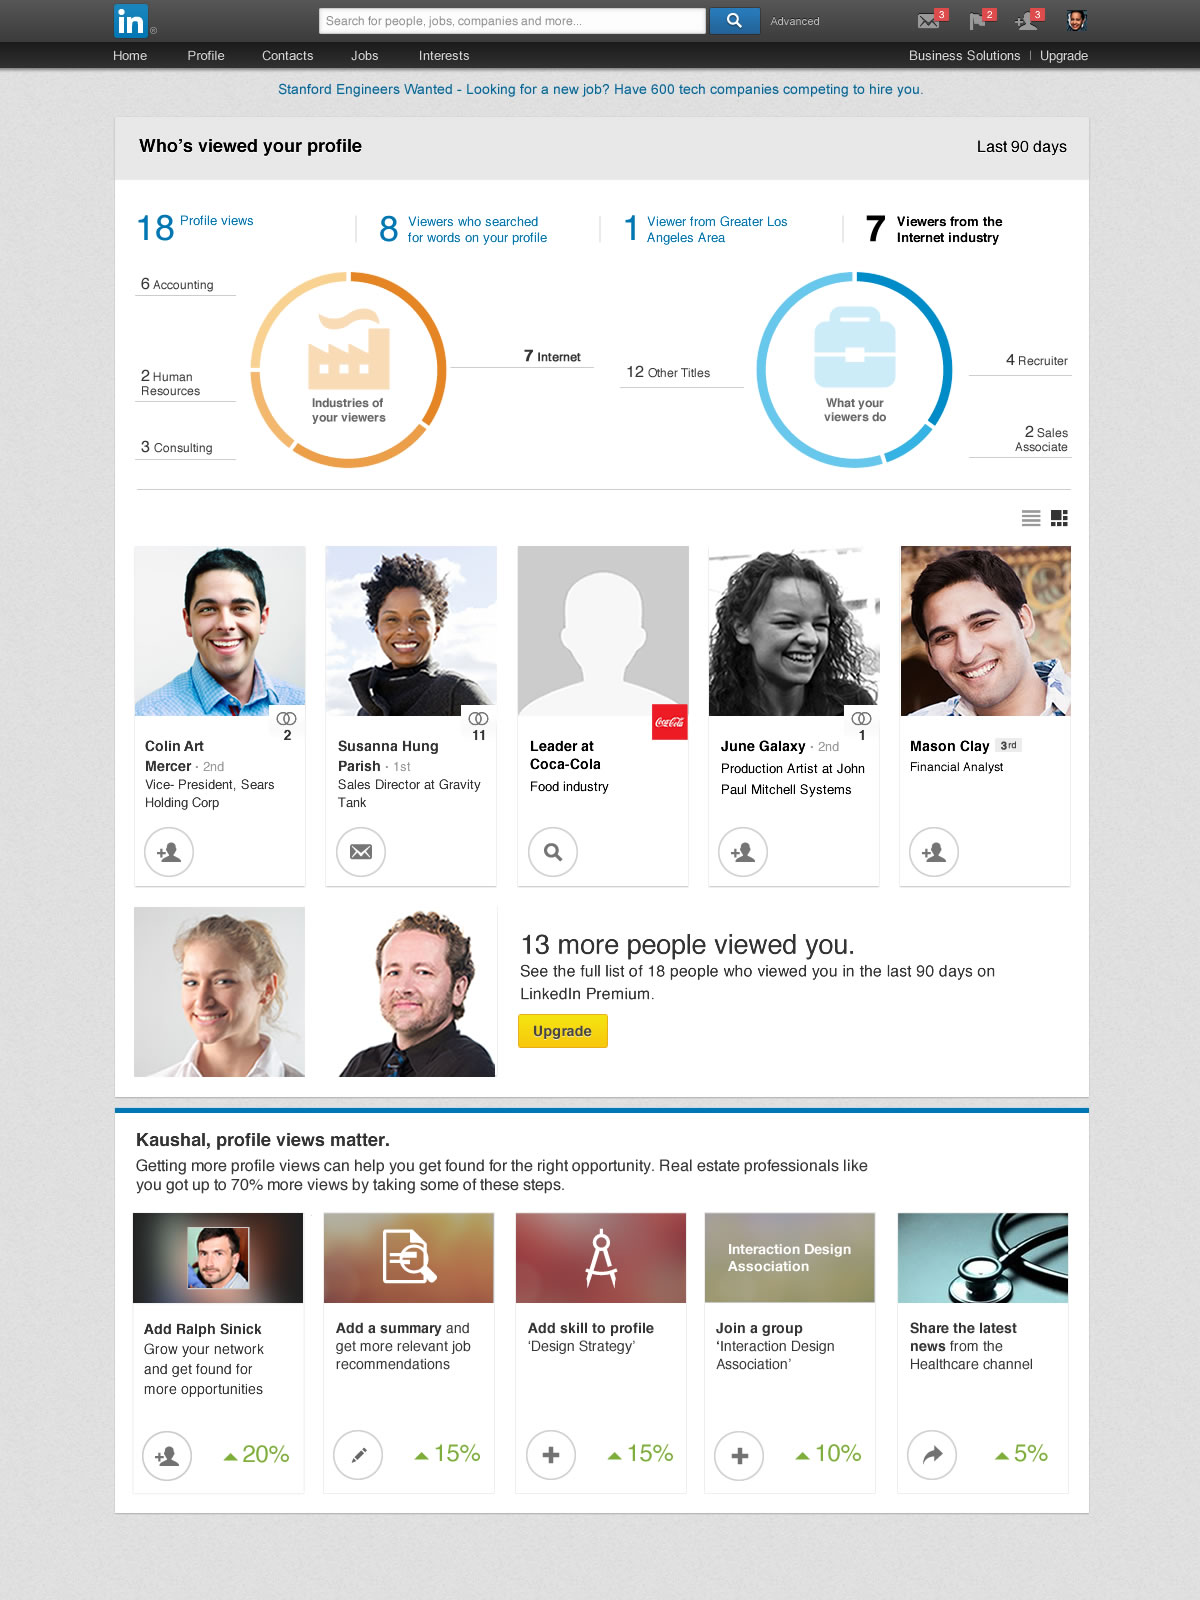 LinkedIn's Who's Viewed Your Profile